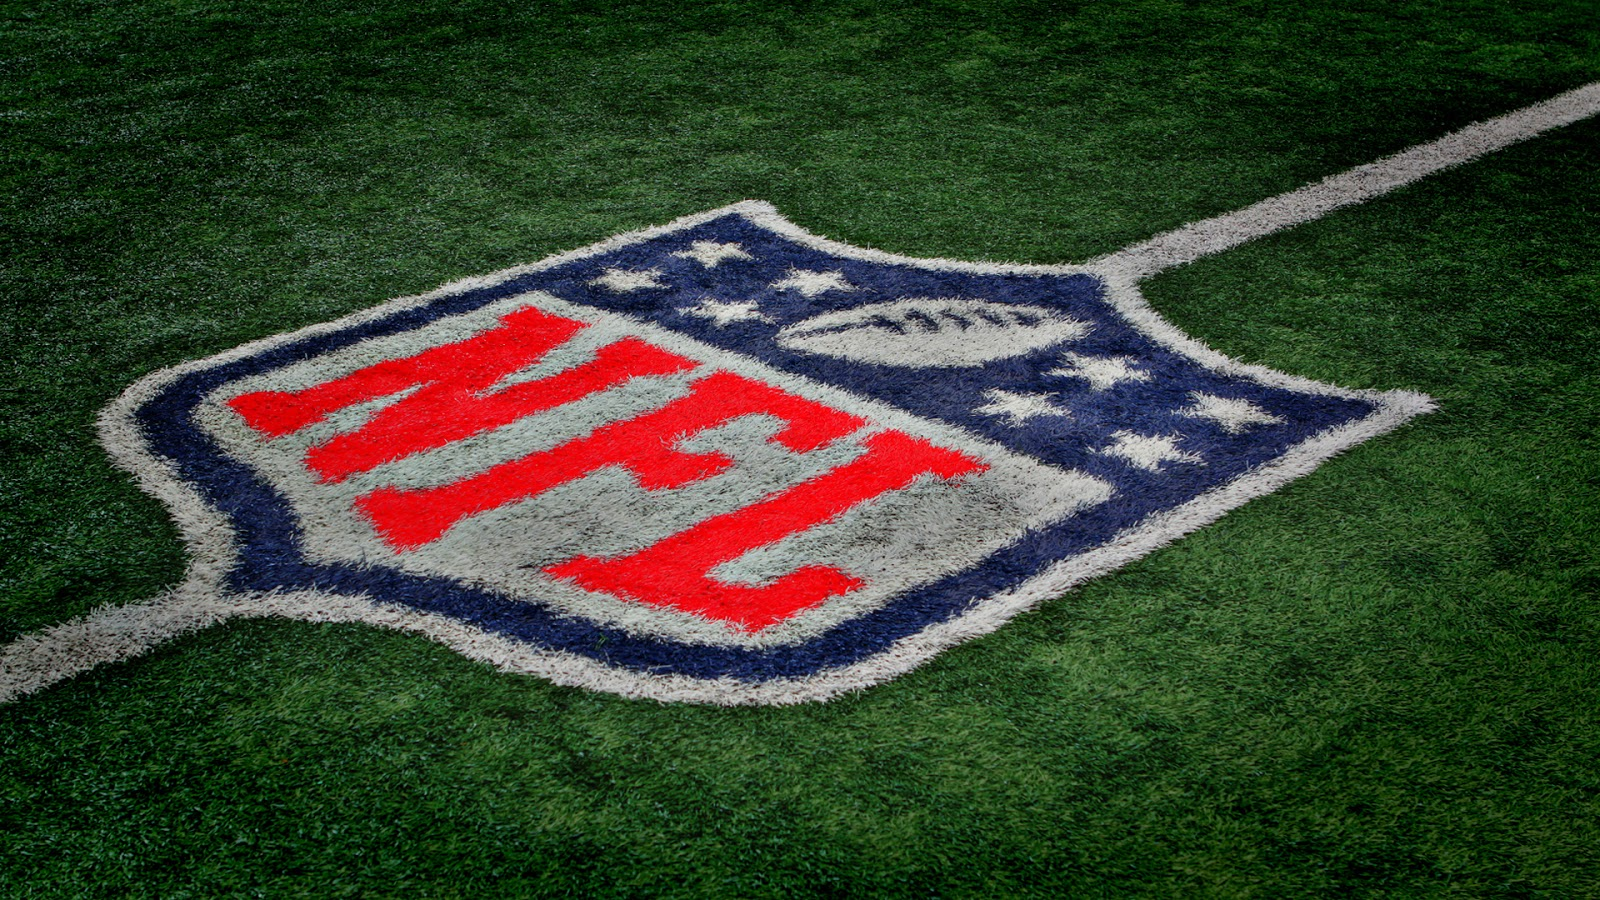 nfl 2012 free download nfl football hd wallpapers for